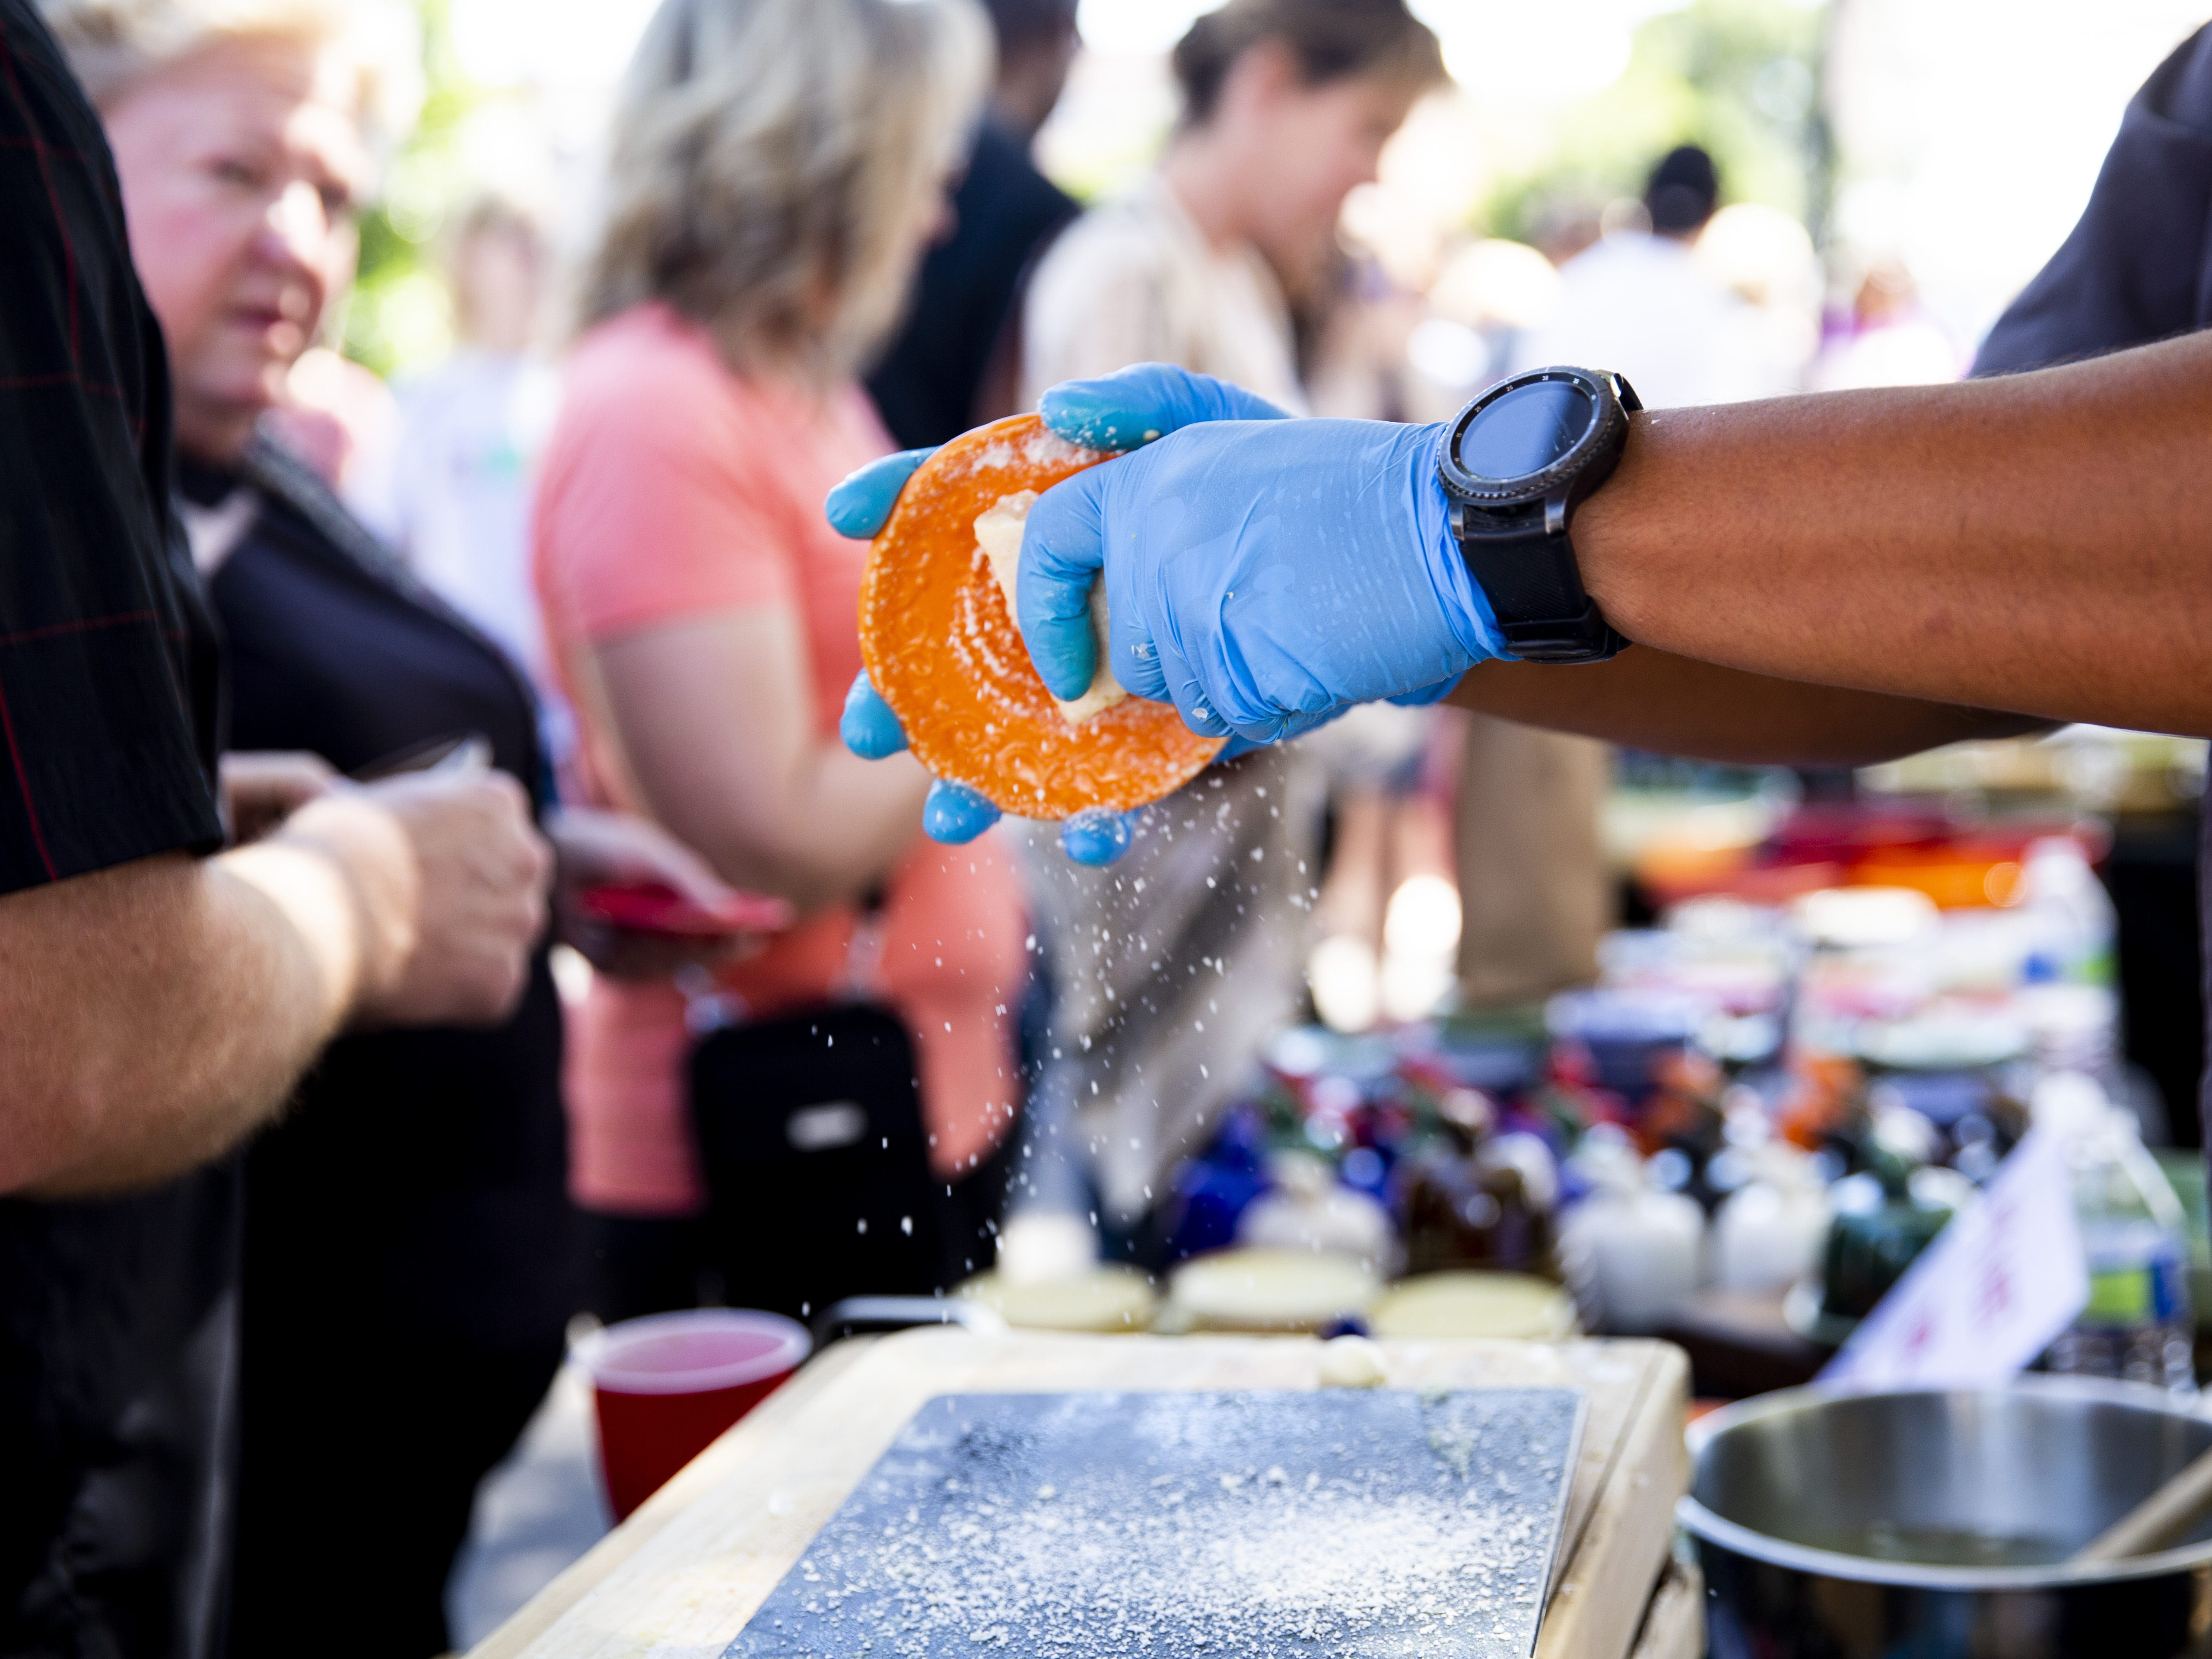 Patrick Lauterio, the owner of Pako Lazo Pottery, demonstrates how his dishes can be used to grate cheese during the Spring Tempe Festival of the Arts in downtown Tempe on March 30, 2019.